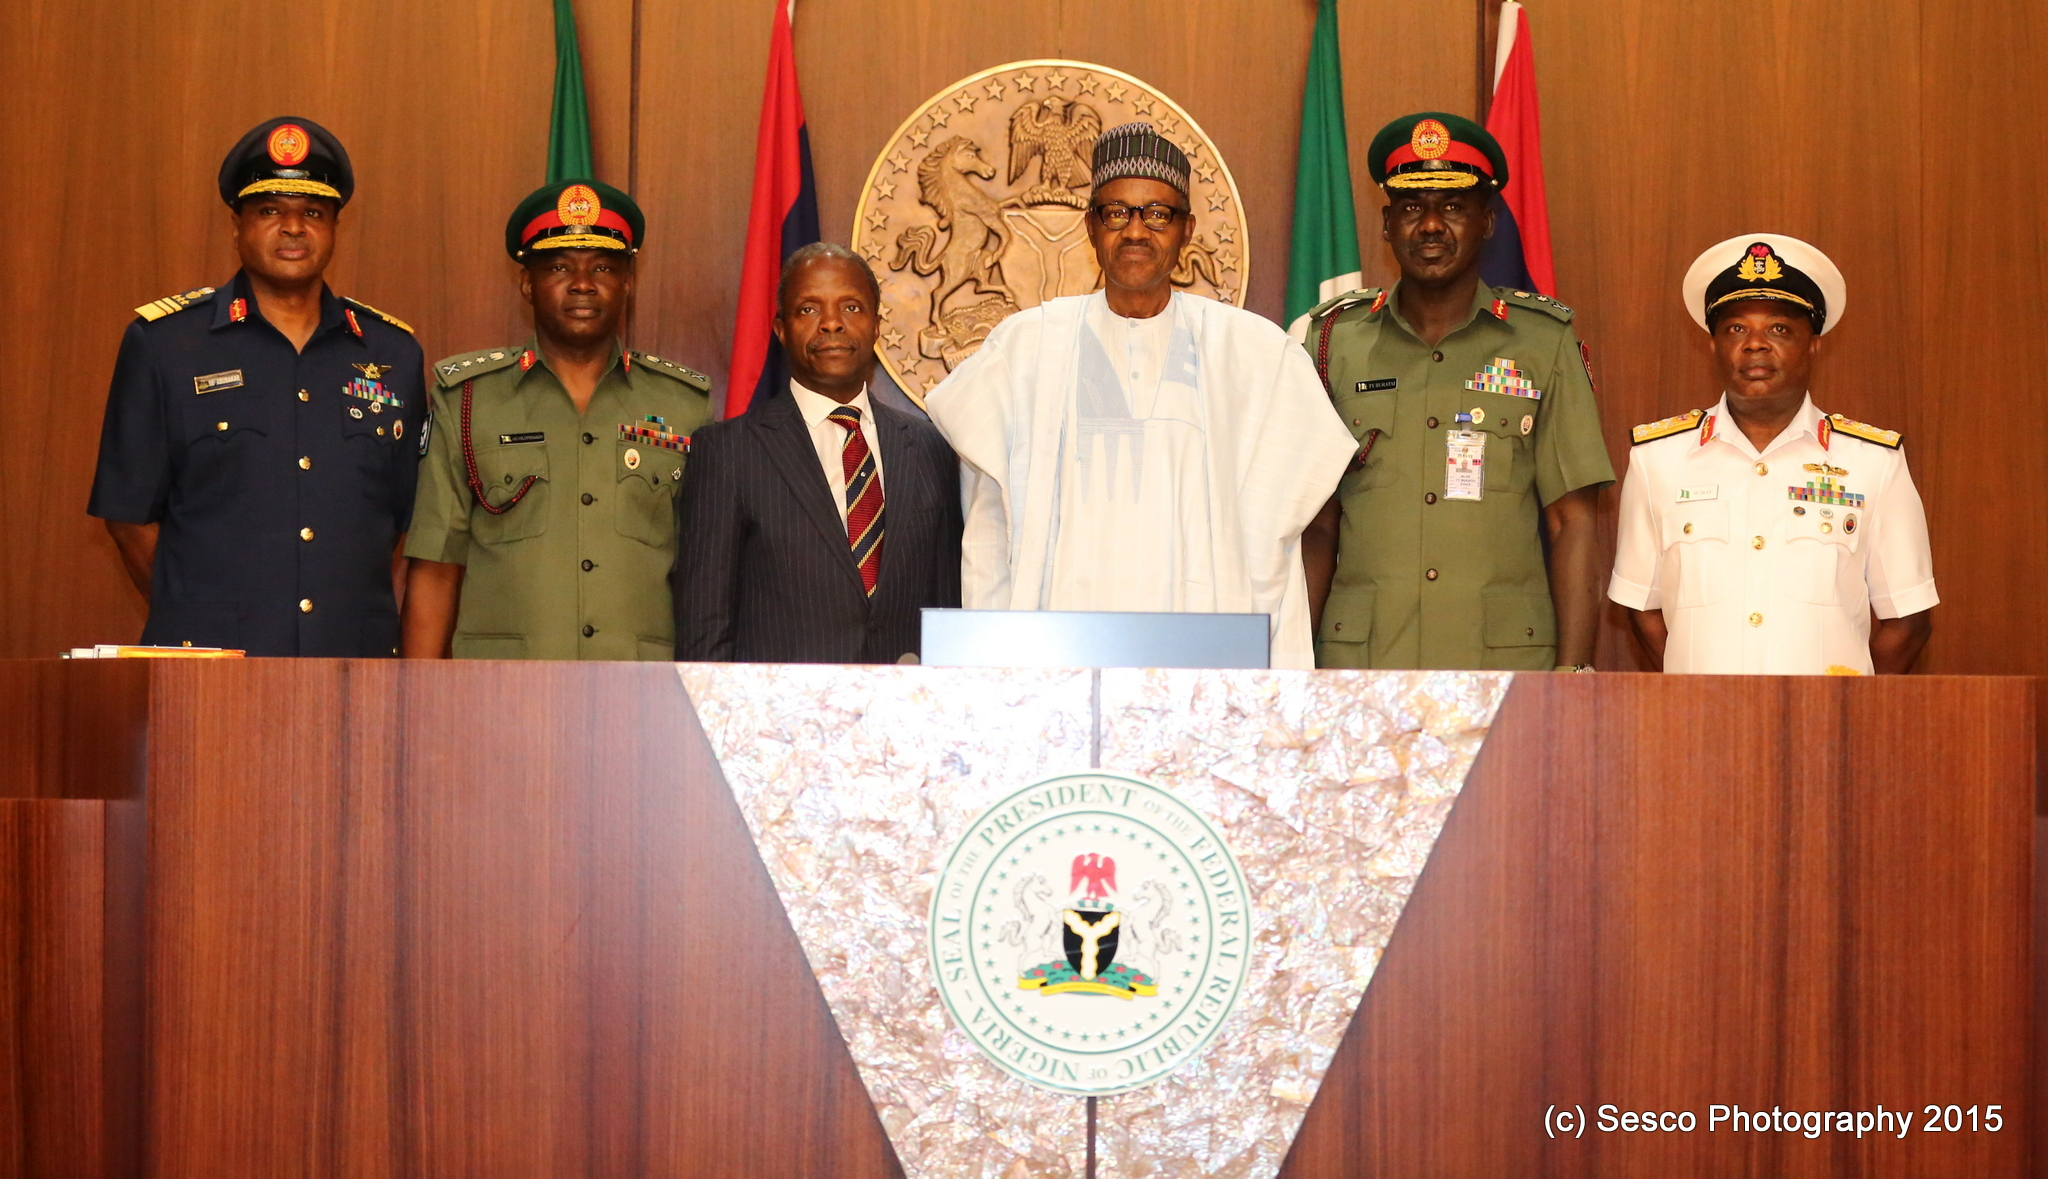 VP Osinbajo At The Swearing-In And Decoration Of Service Chiefs Ceremony On 13/08/2015